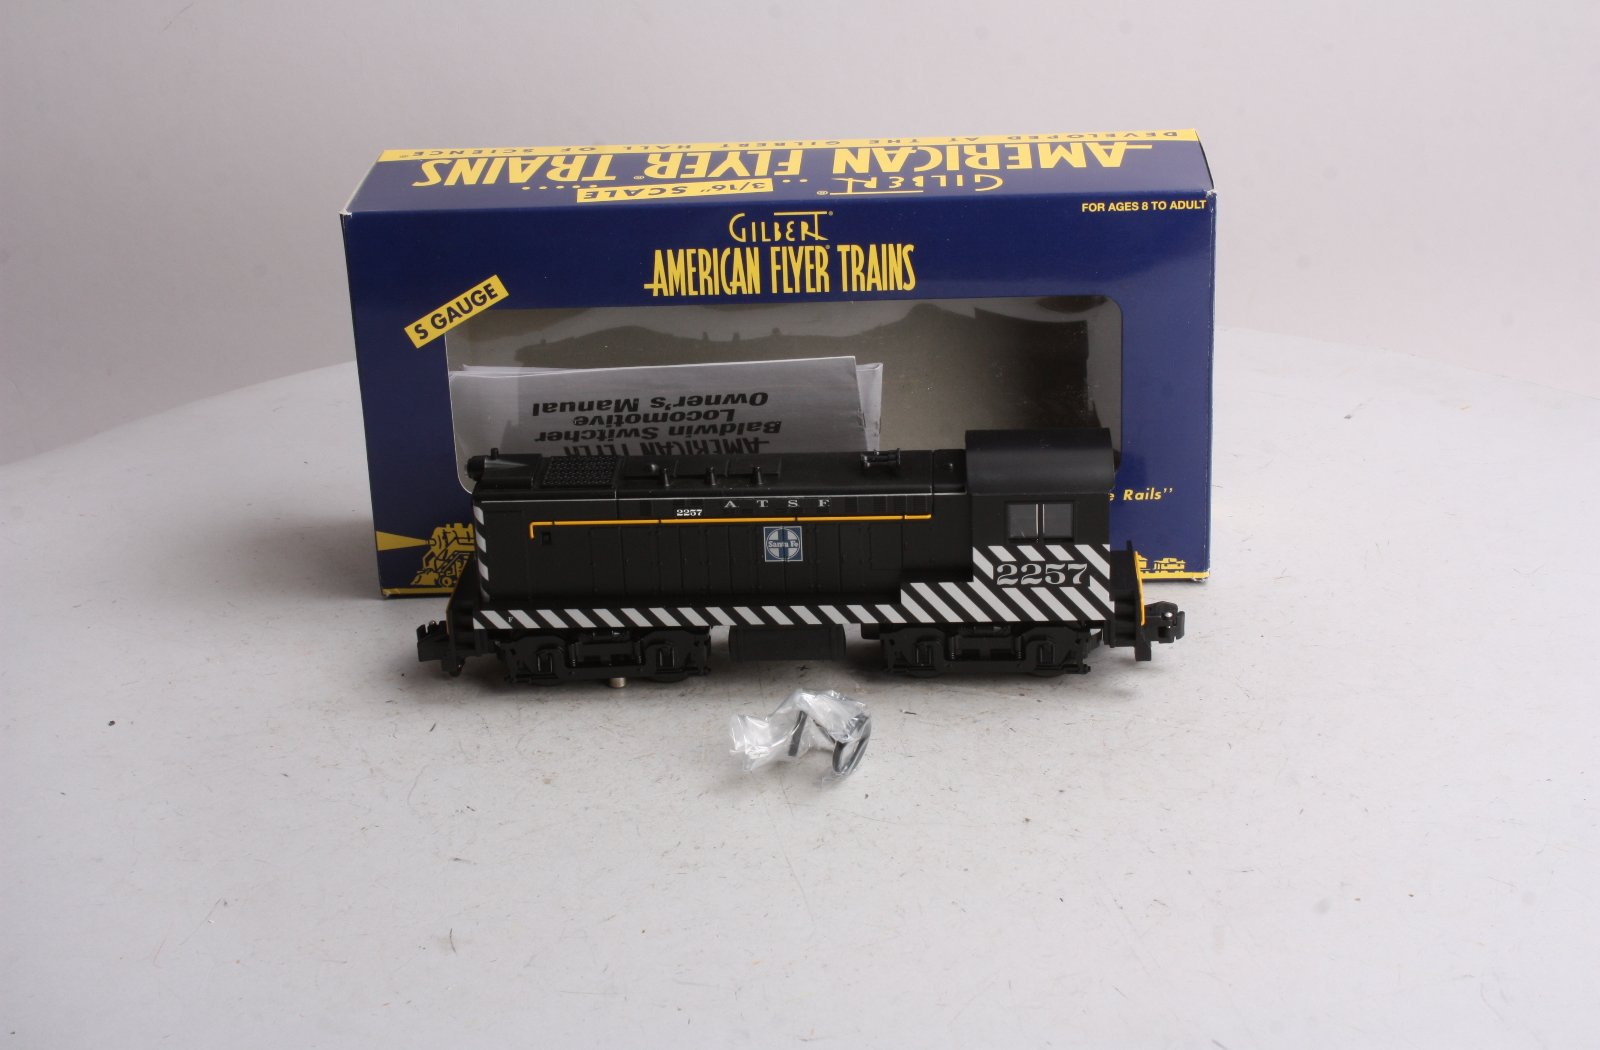 Https Products 3rd Rail 5694 Prr B 1 Electric Switcher 48205 4wire Flat Connector Vehicle To Trailer Wiring 20130110 113751 C1 Trainz 3488691 00v1489080403